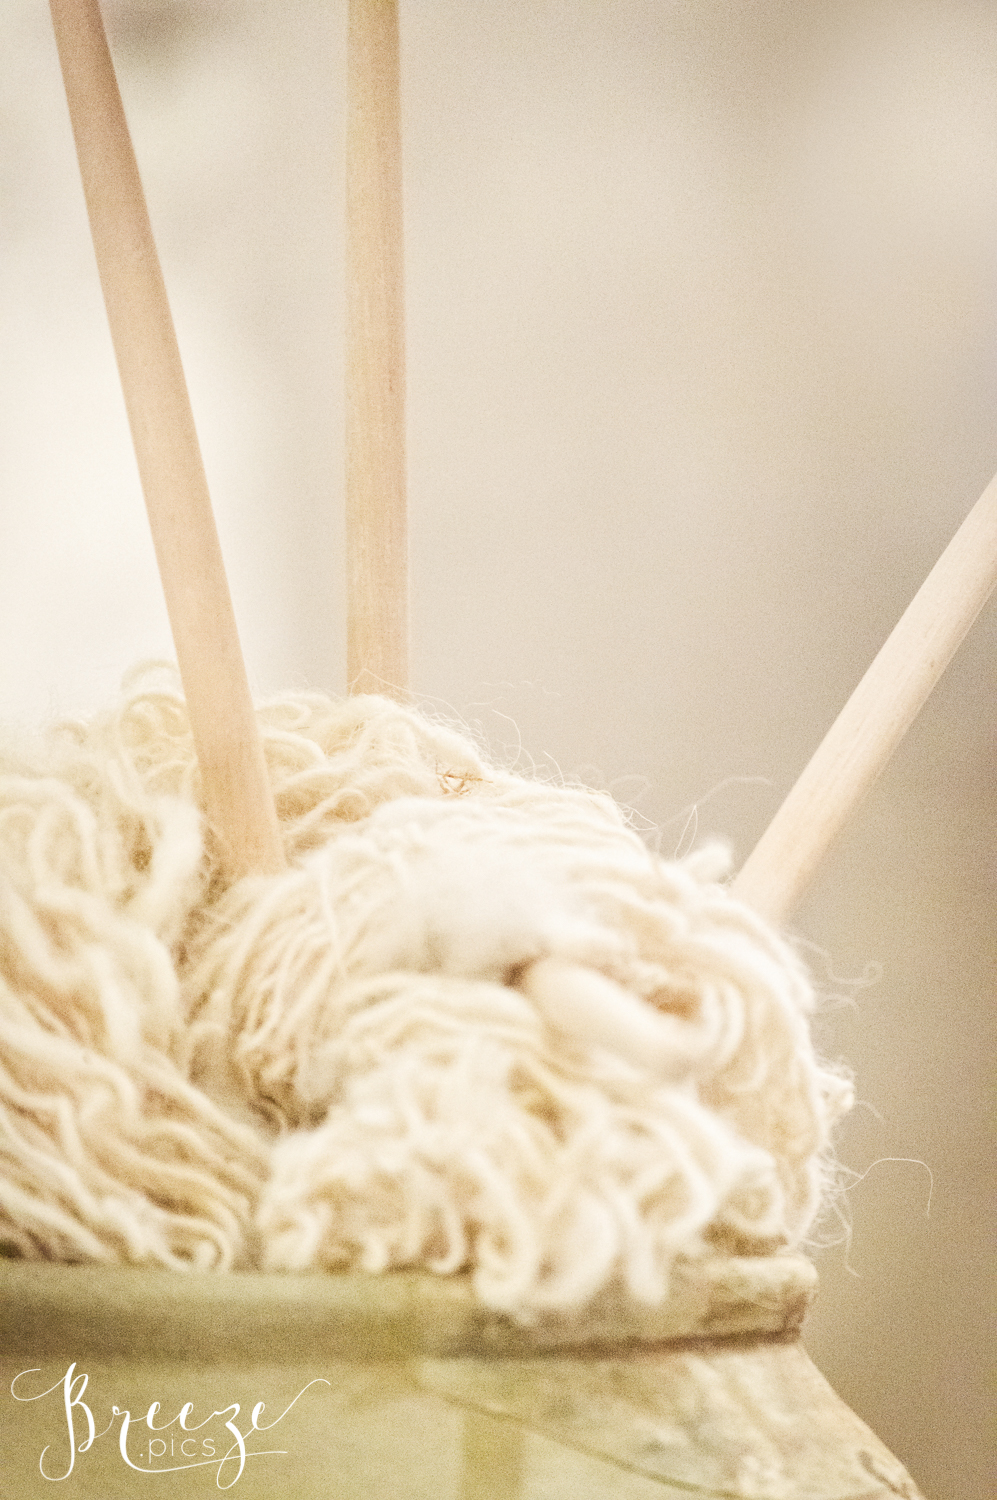 hand spun wool with wooden knitting needles Bernadette Meyers craft photography